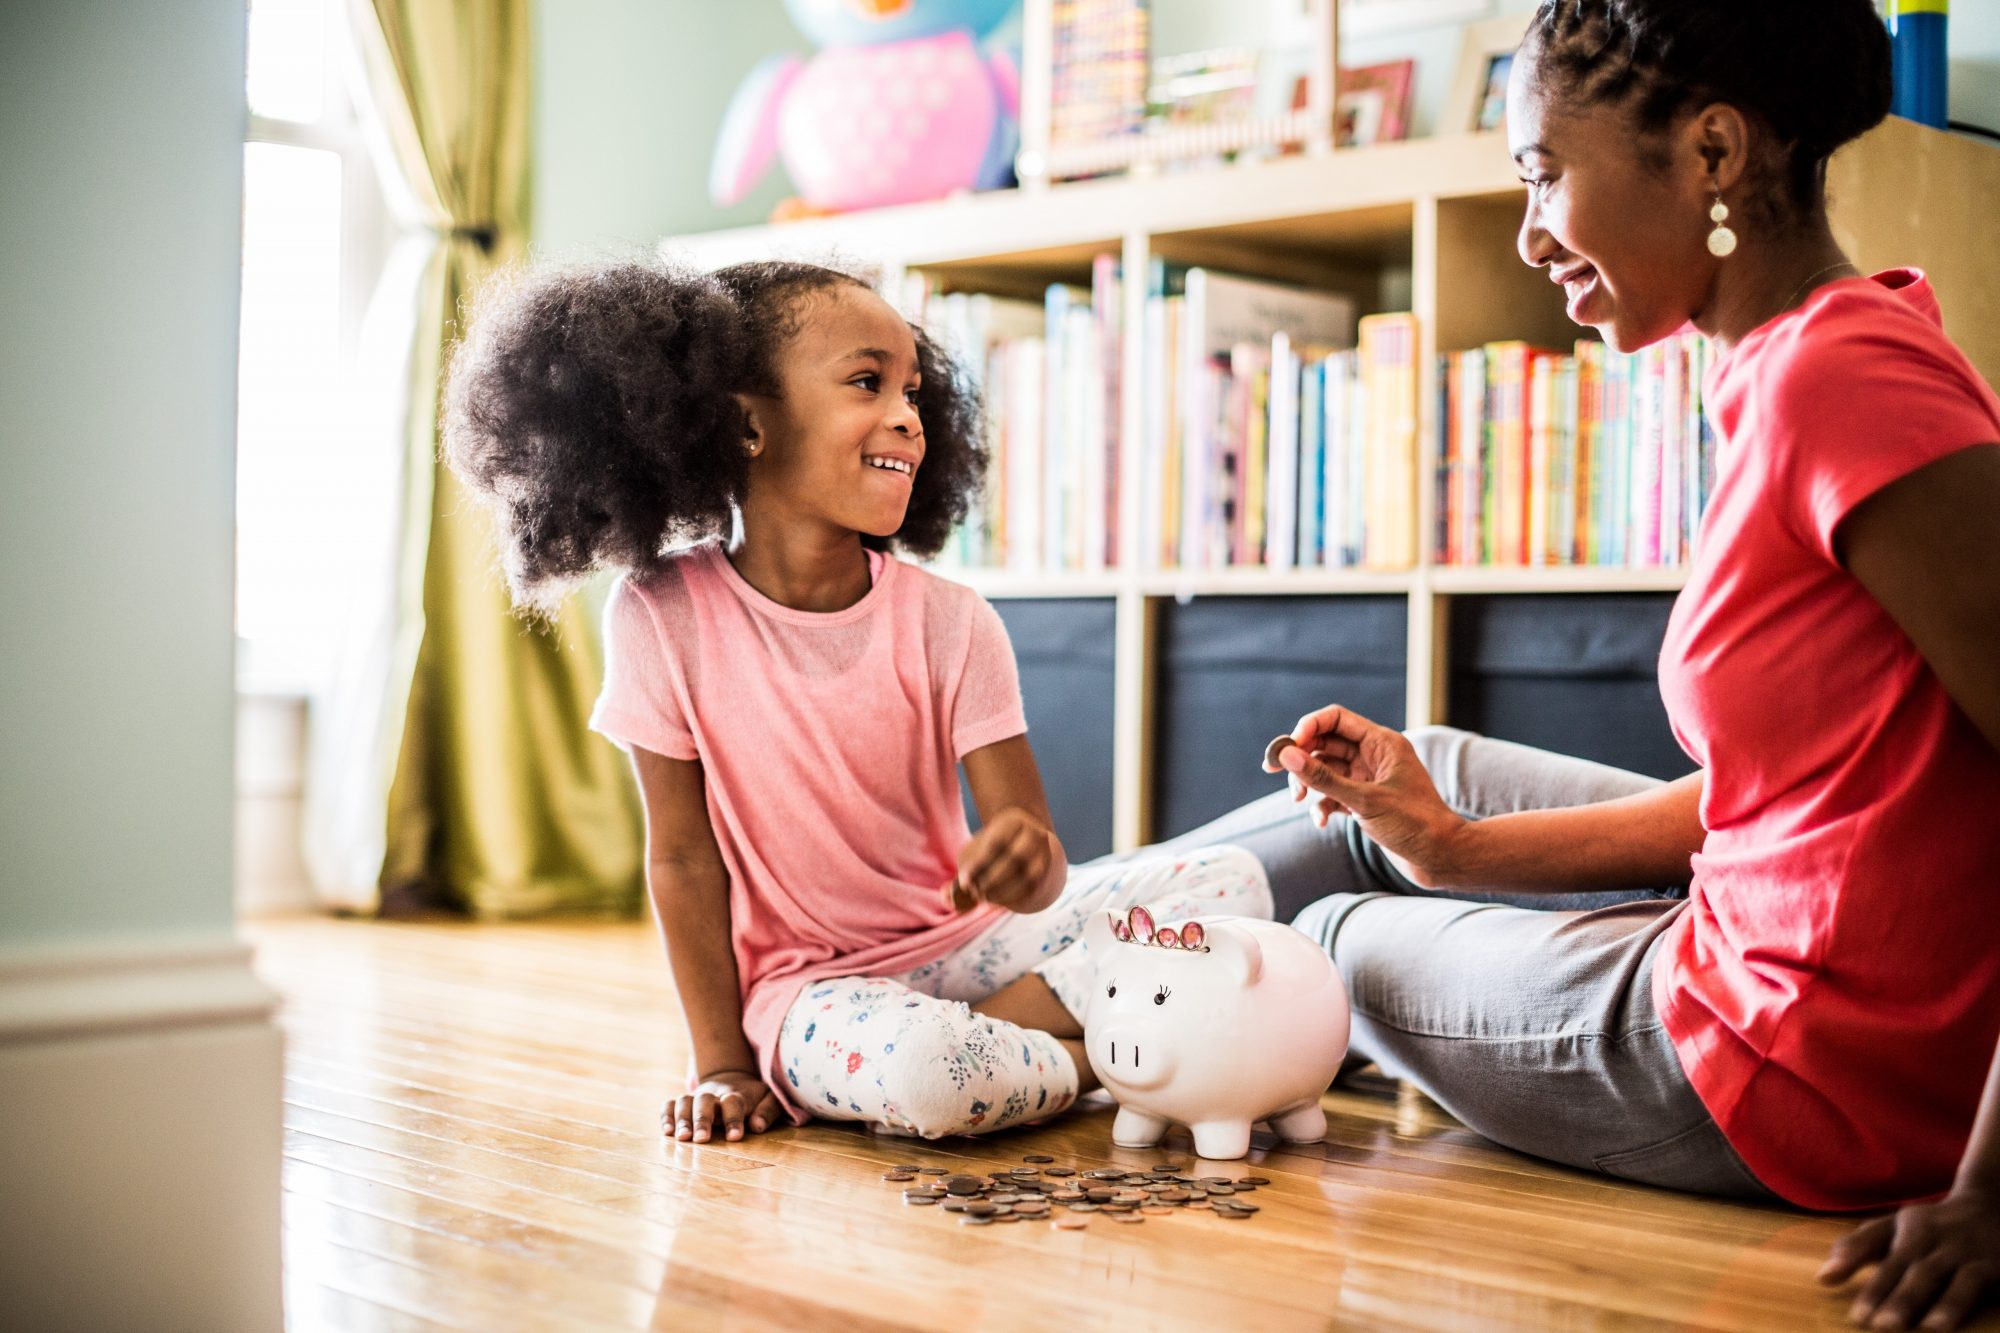 mother and daughter counting piggy bank money